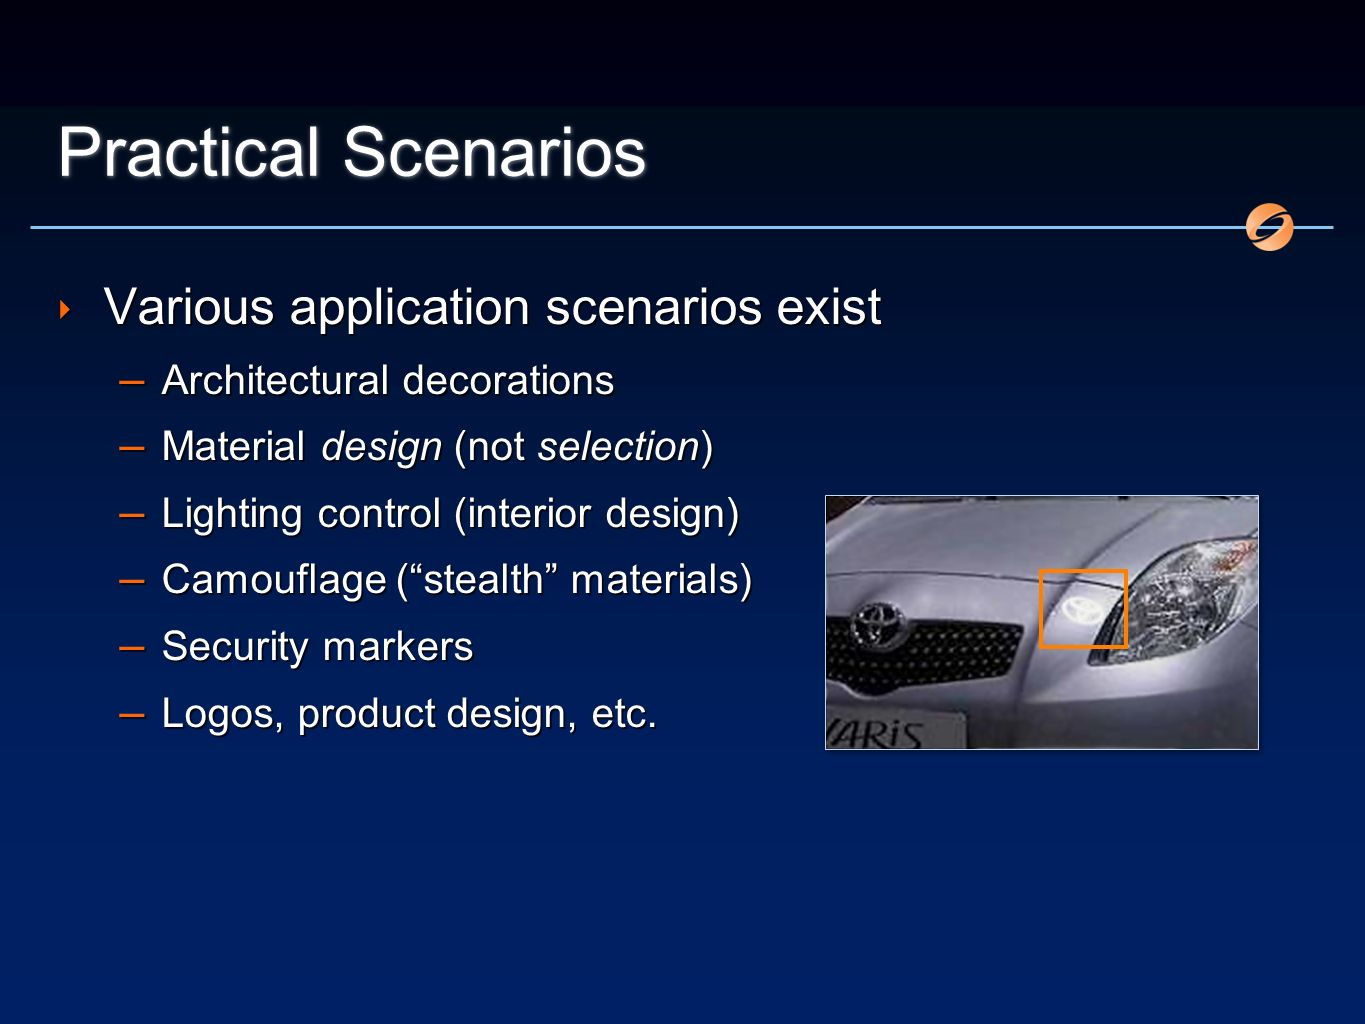 Practical Scenarios Various application scenarios exist – Architectural decorations – Material design (not selection) – Lighting control (interior design) – Camouflage (stealth materials) – Security markers – Logos, product design, etc.